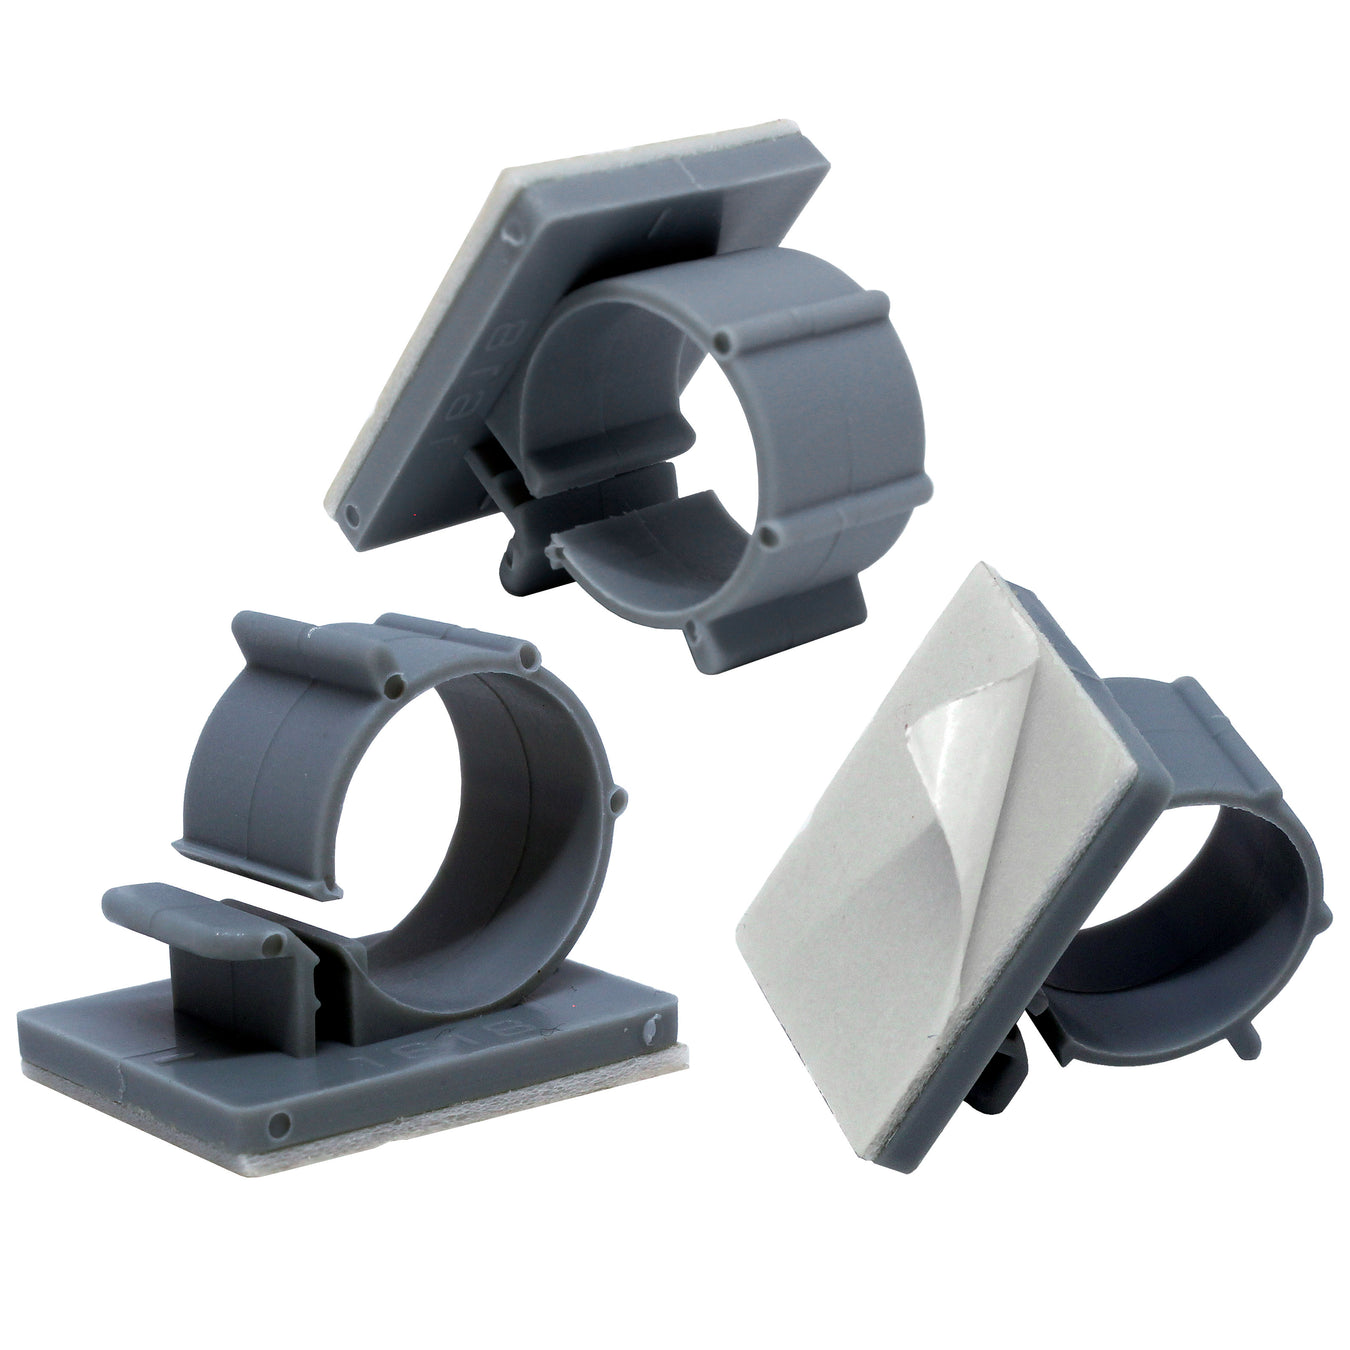 Self-Adhesive Clamps